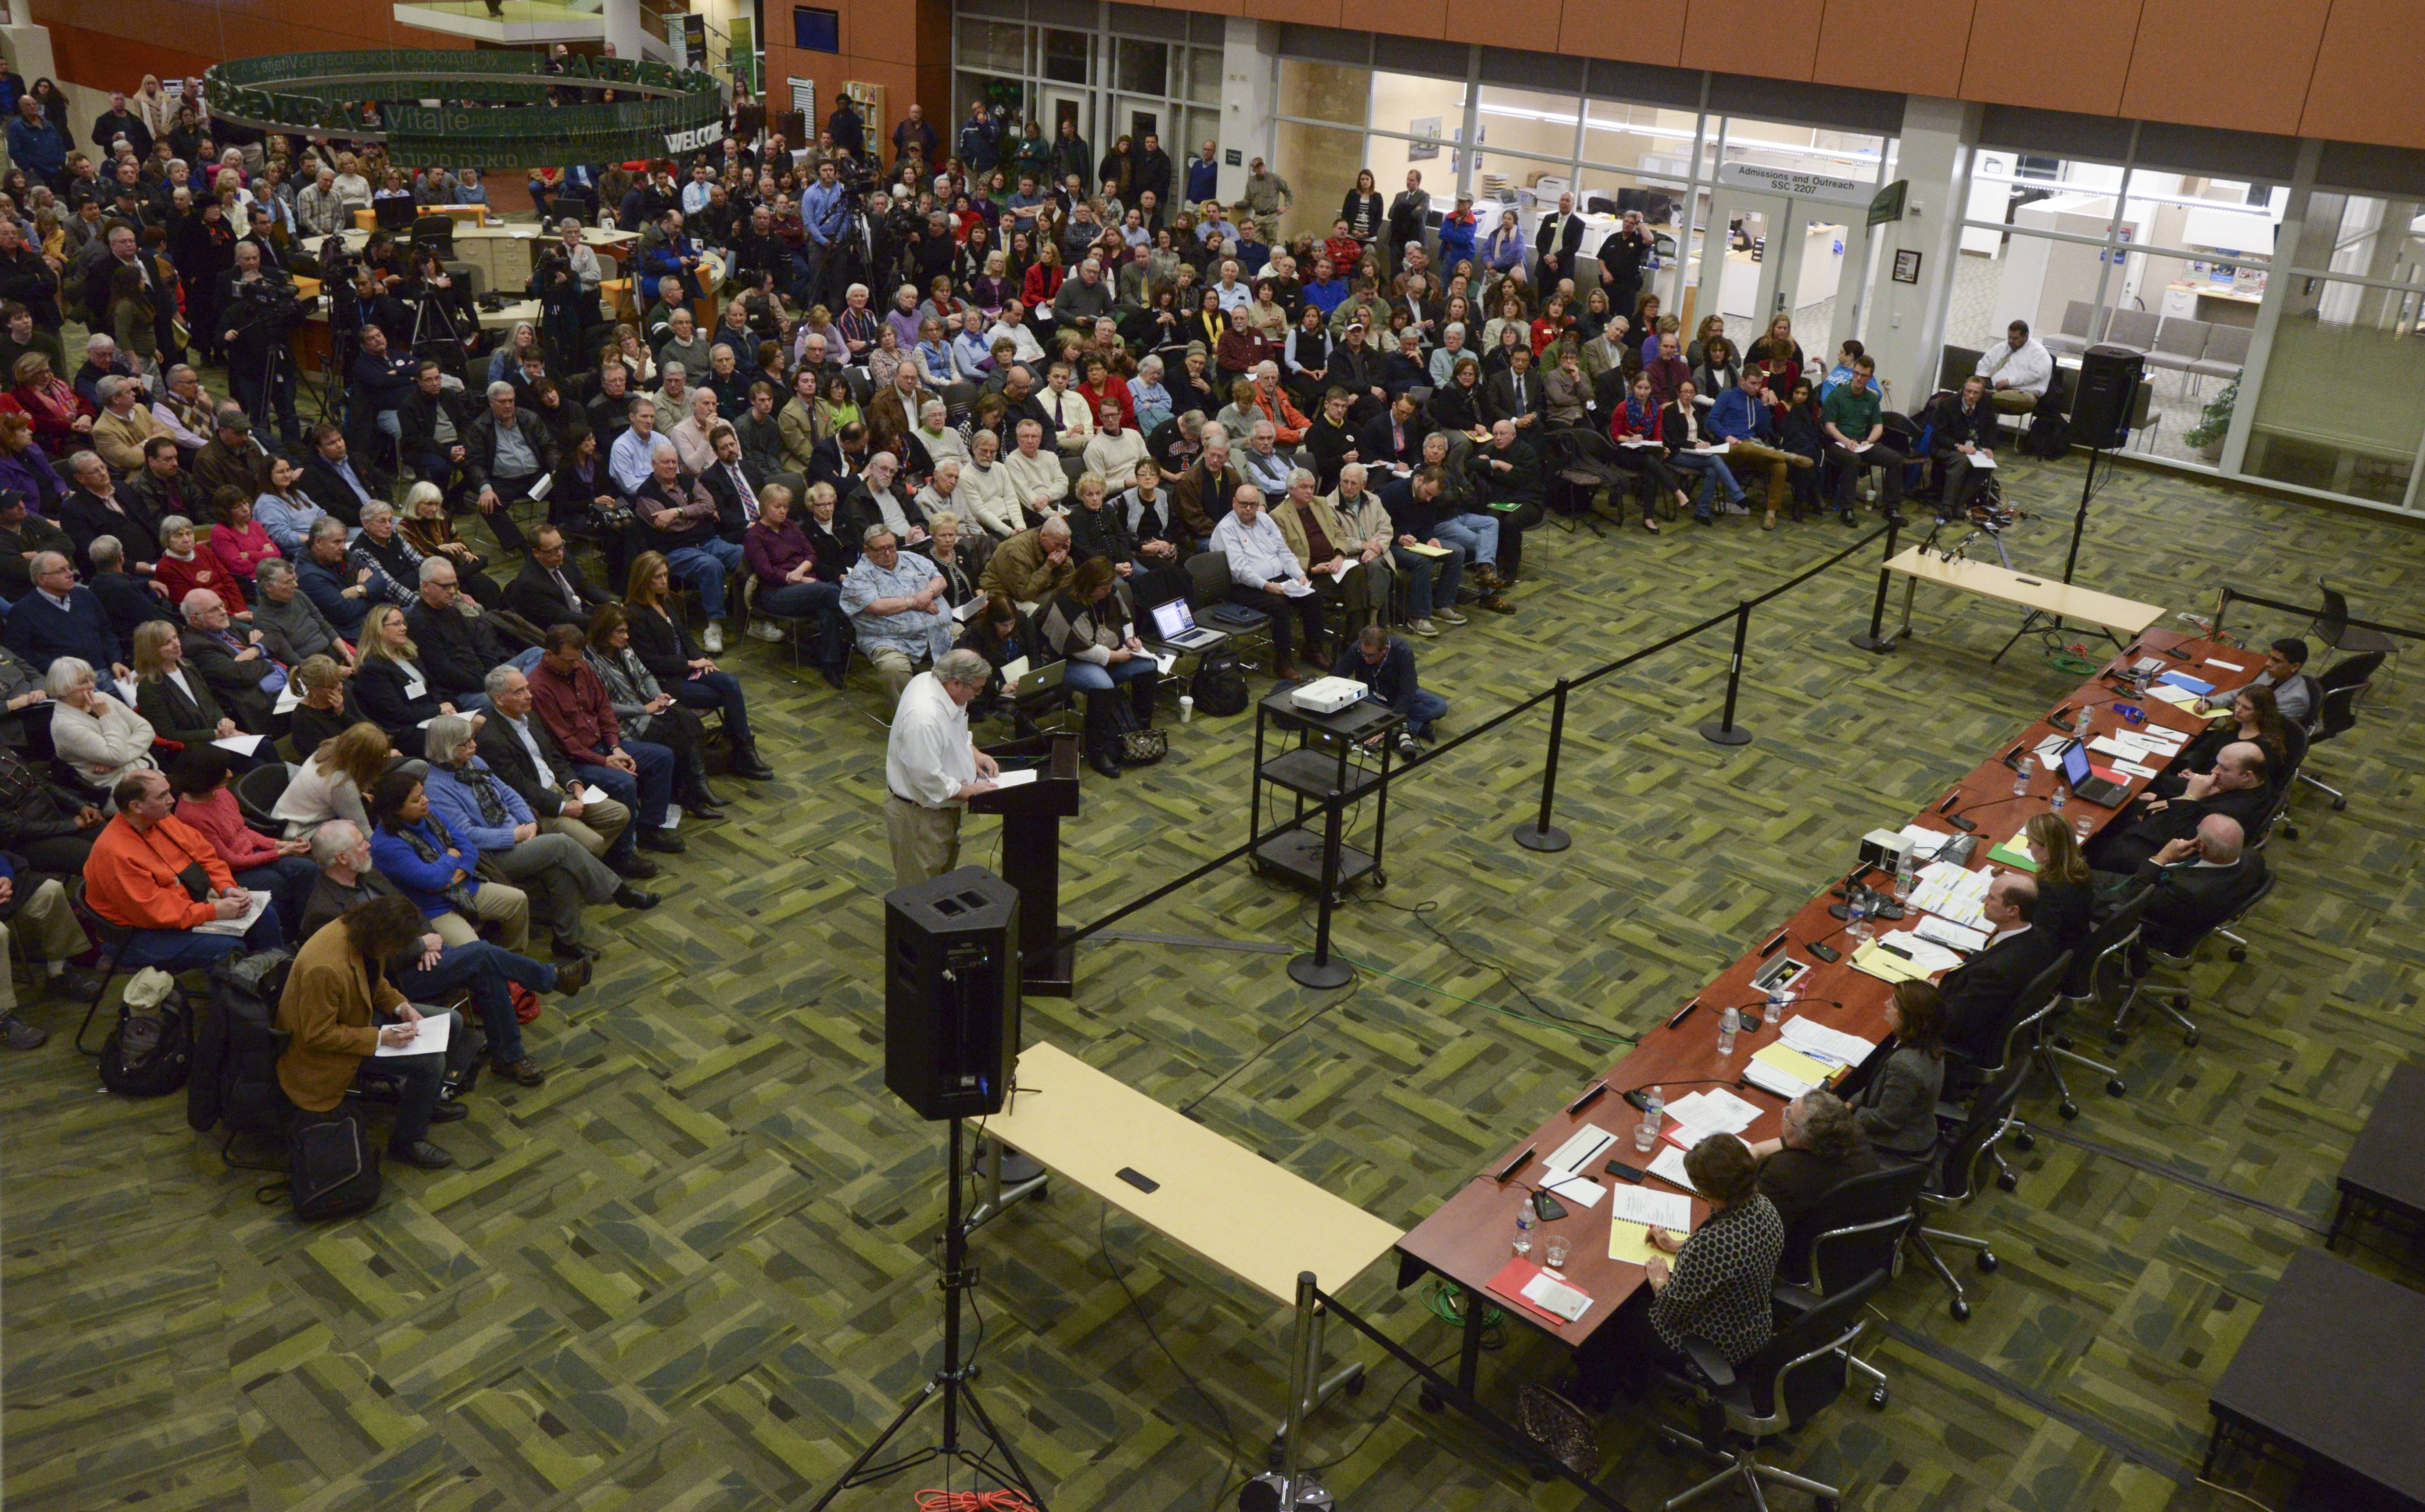 Over 300 people attended the College of DuPage board's special meeting to address the severance package awarded to President Robert Breuder.